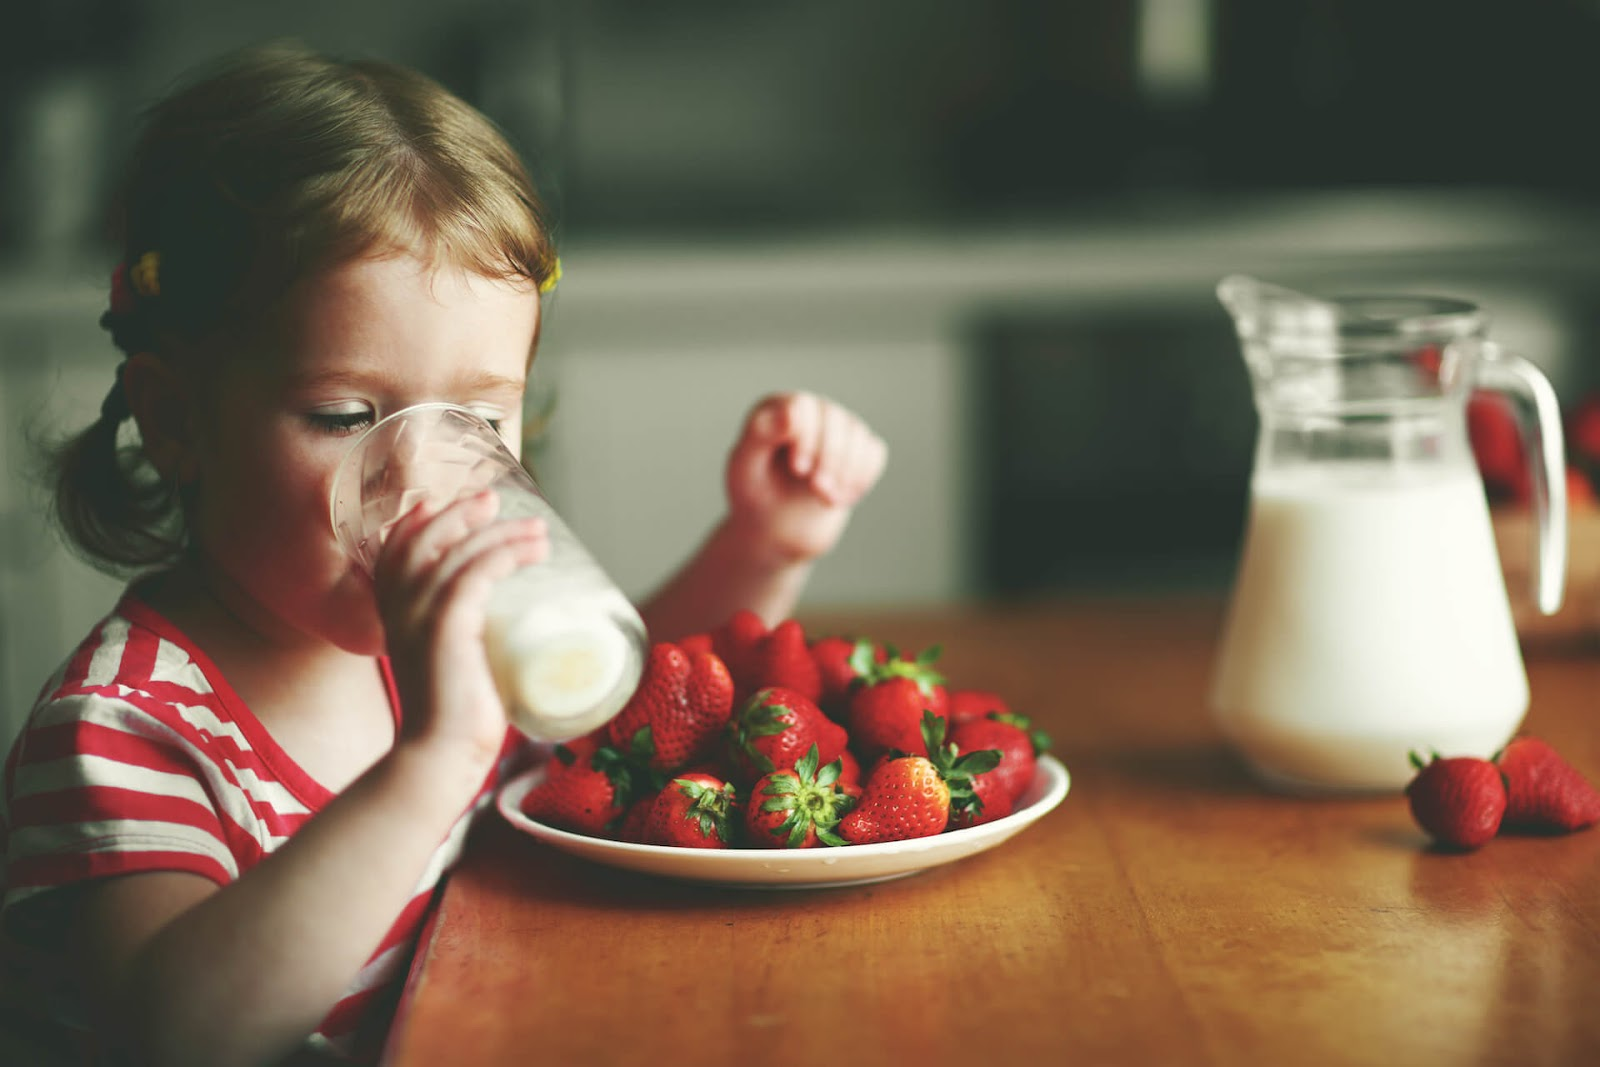 Young girl drinking pea milk with some strawberries nearby